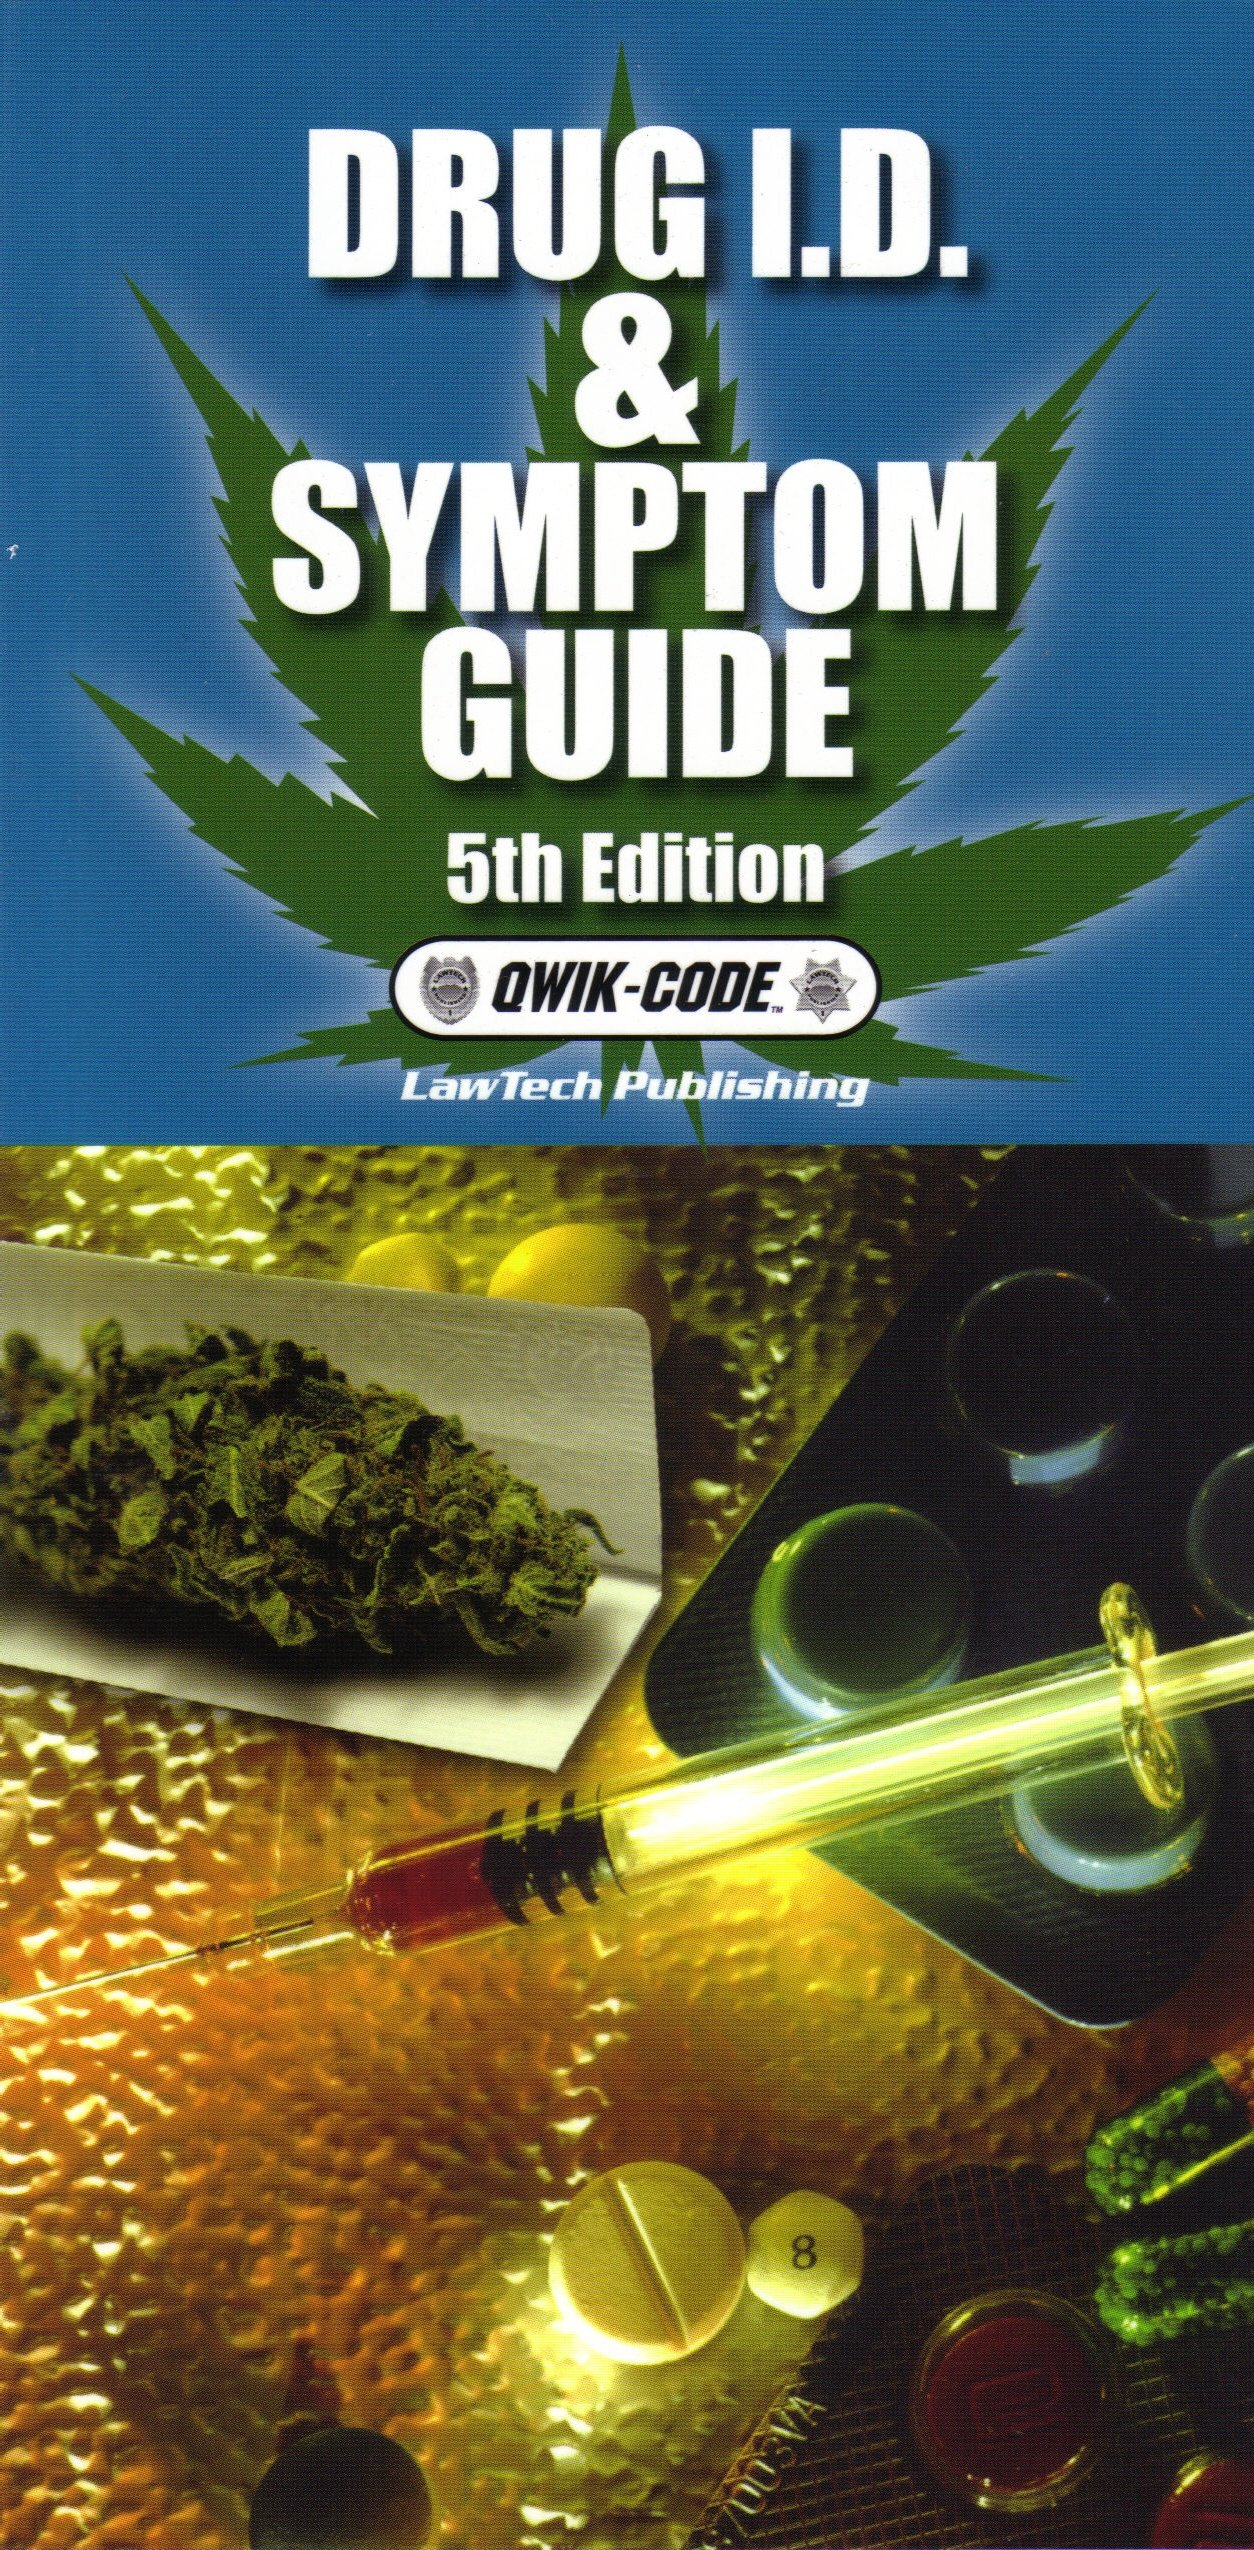 Drug I.D. & Symptom Guide 5th Edition